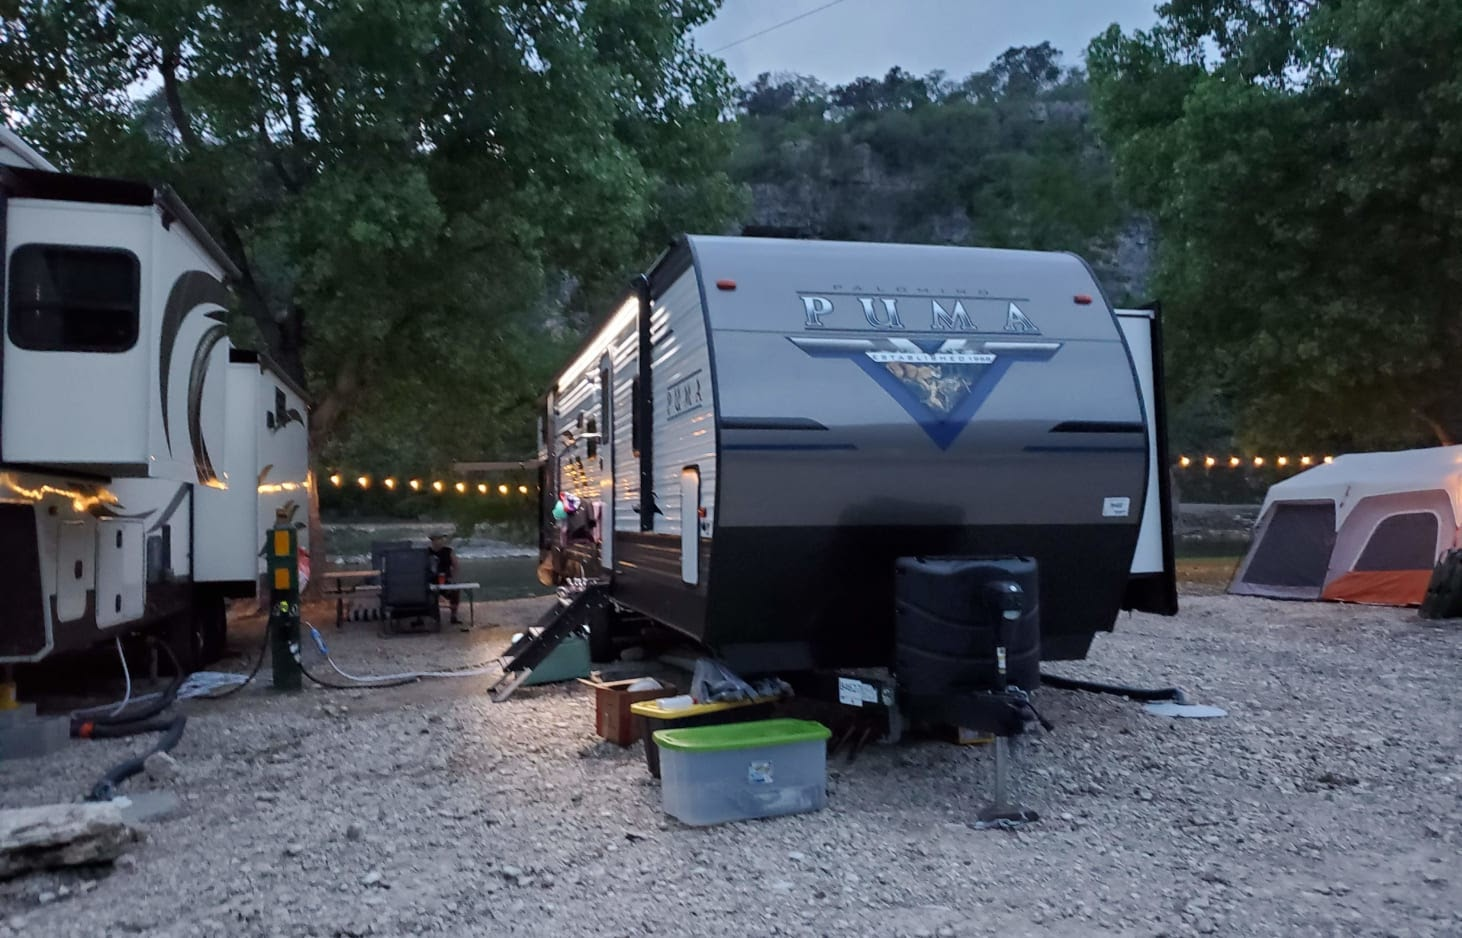 glamping in tx - This 2020 Palomino Puma 32RBFQ can be delivered within 500 miles.